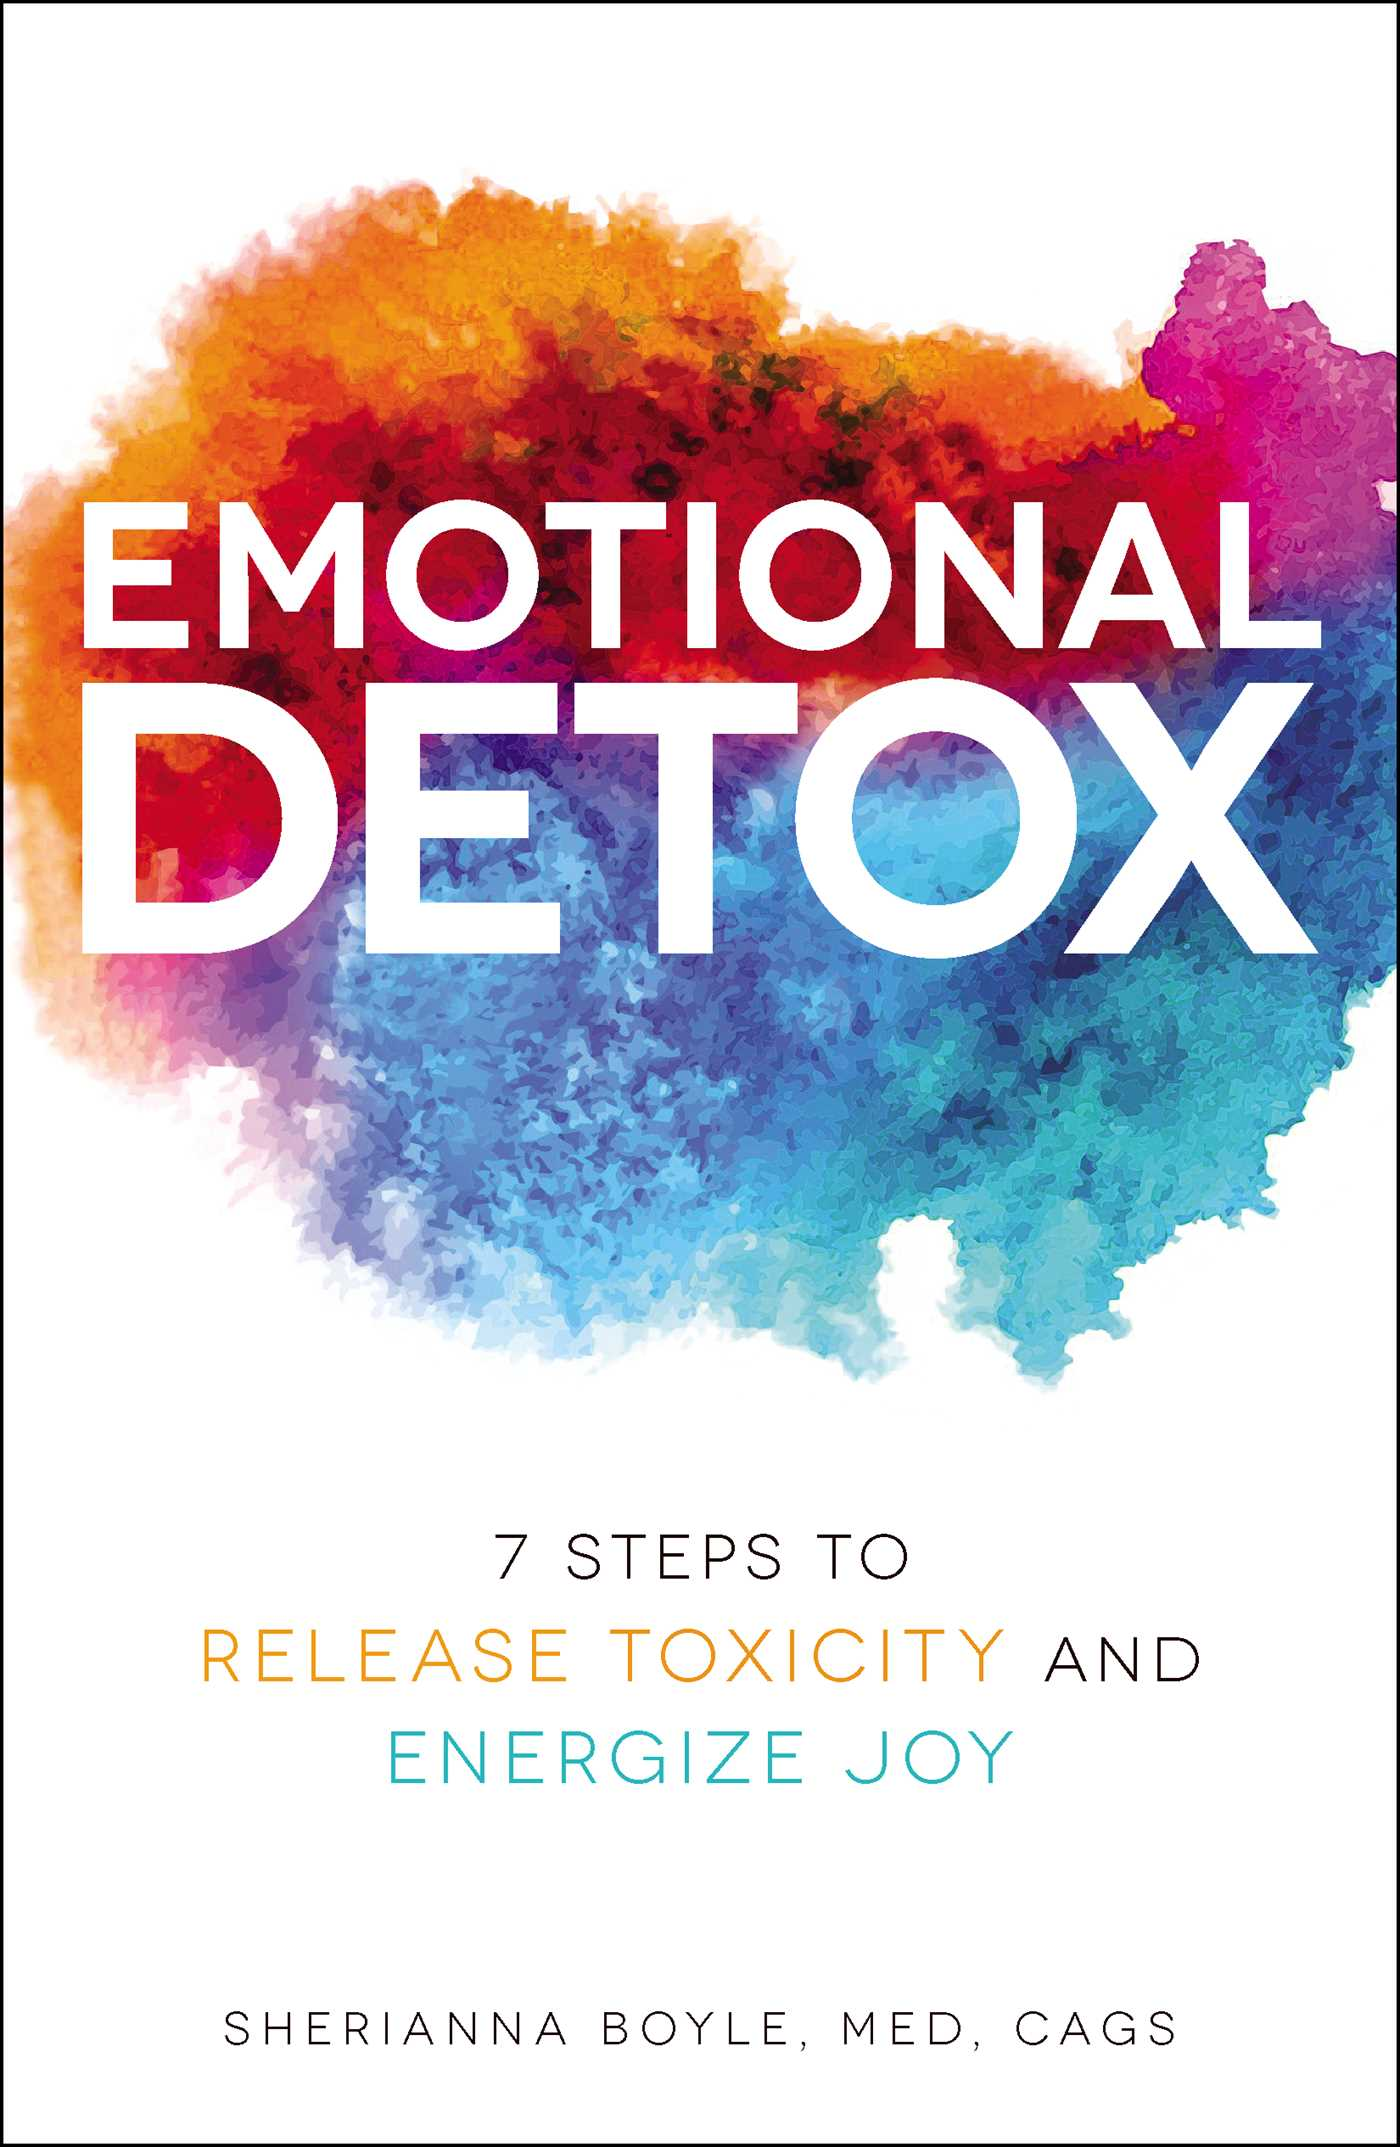 Emotional detox 9781507207185 hr